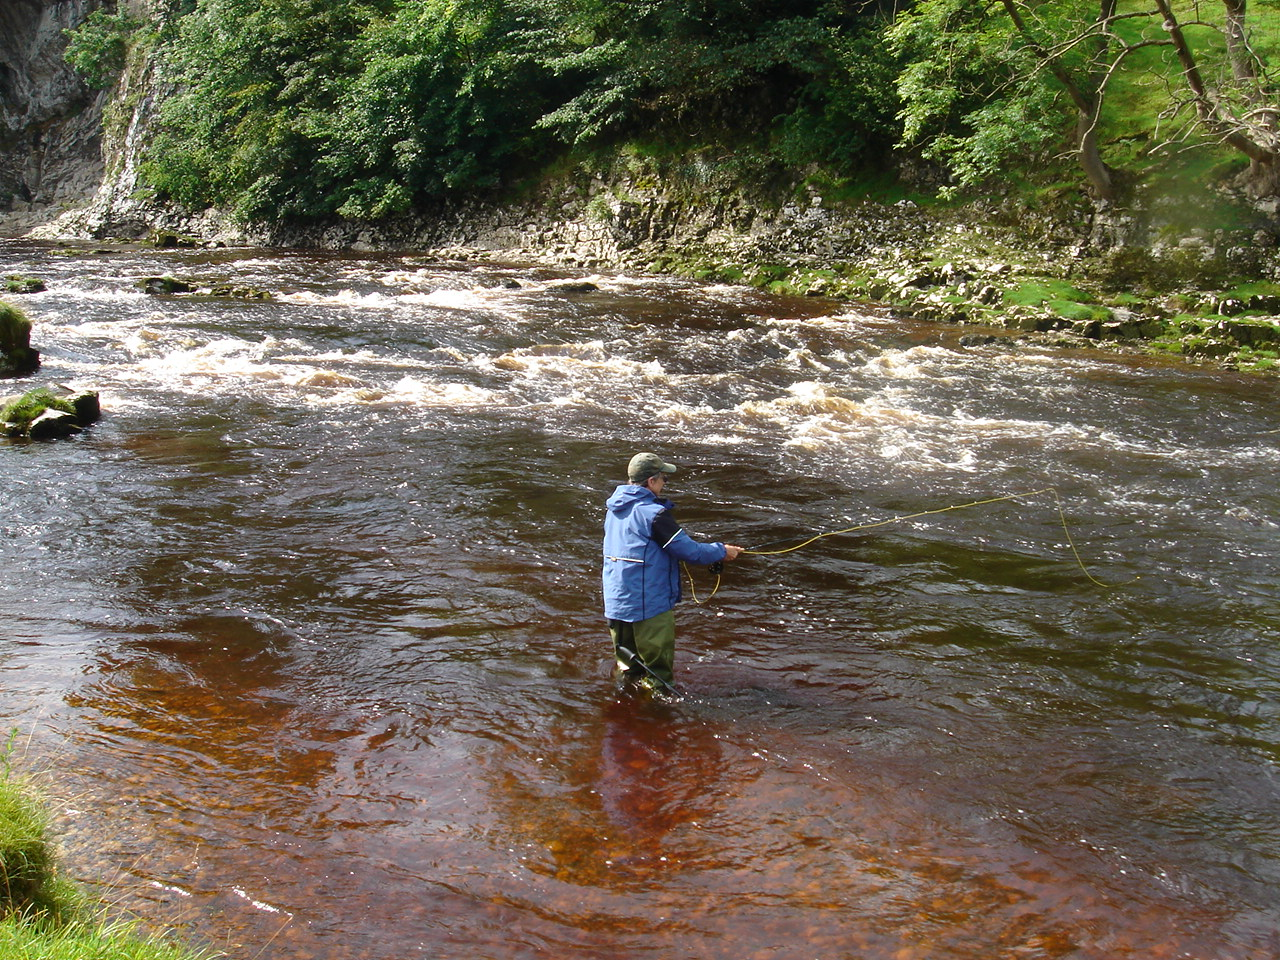 River Wharf below Loup Scar, above Burnsall.  caught a couple of browns, one surely wild.  spent the day Czech Nymphing as the water was a good foot above normal, deep, fast, and peaty.  peaty means a wonderful reddish gold color that made every fish look like a salmon.